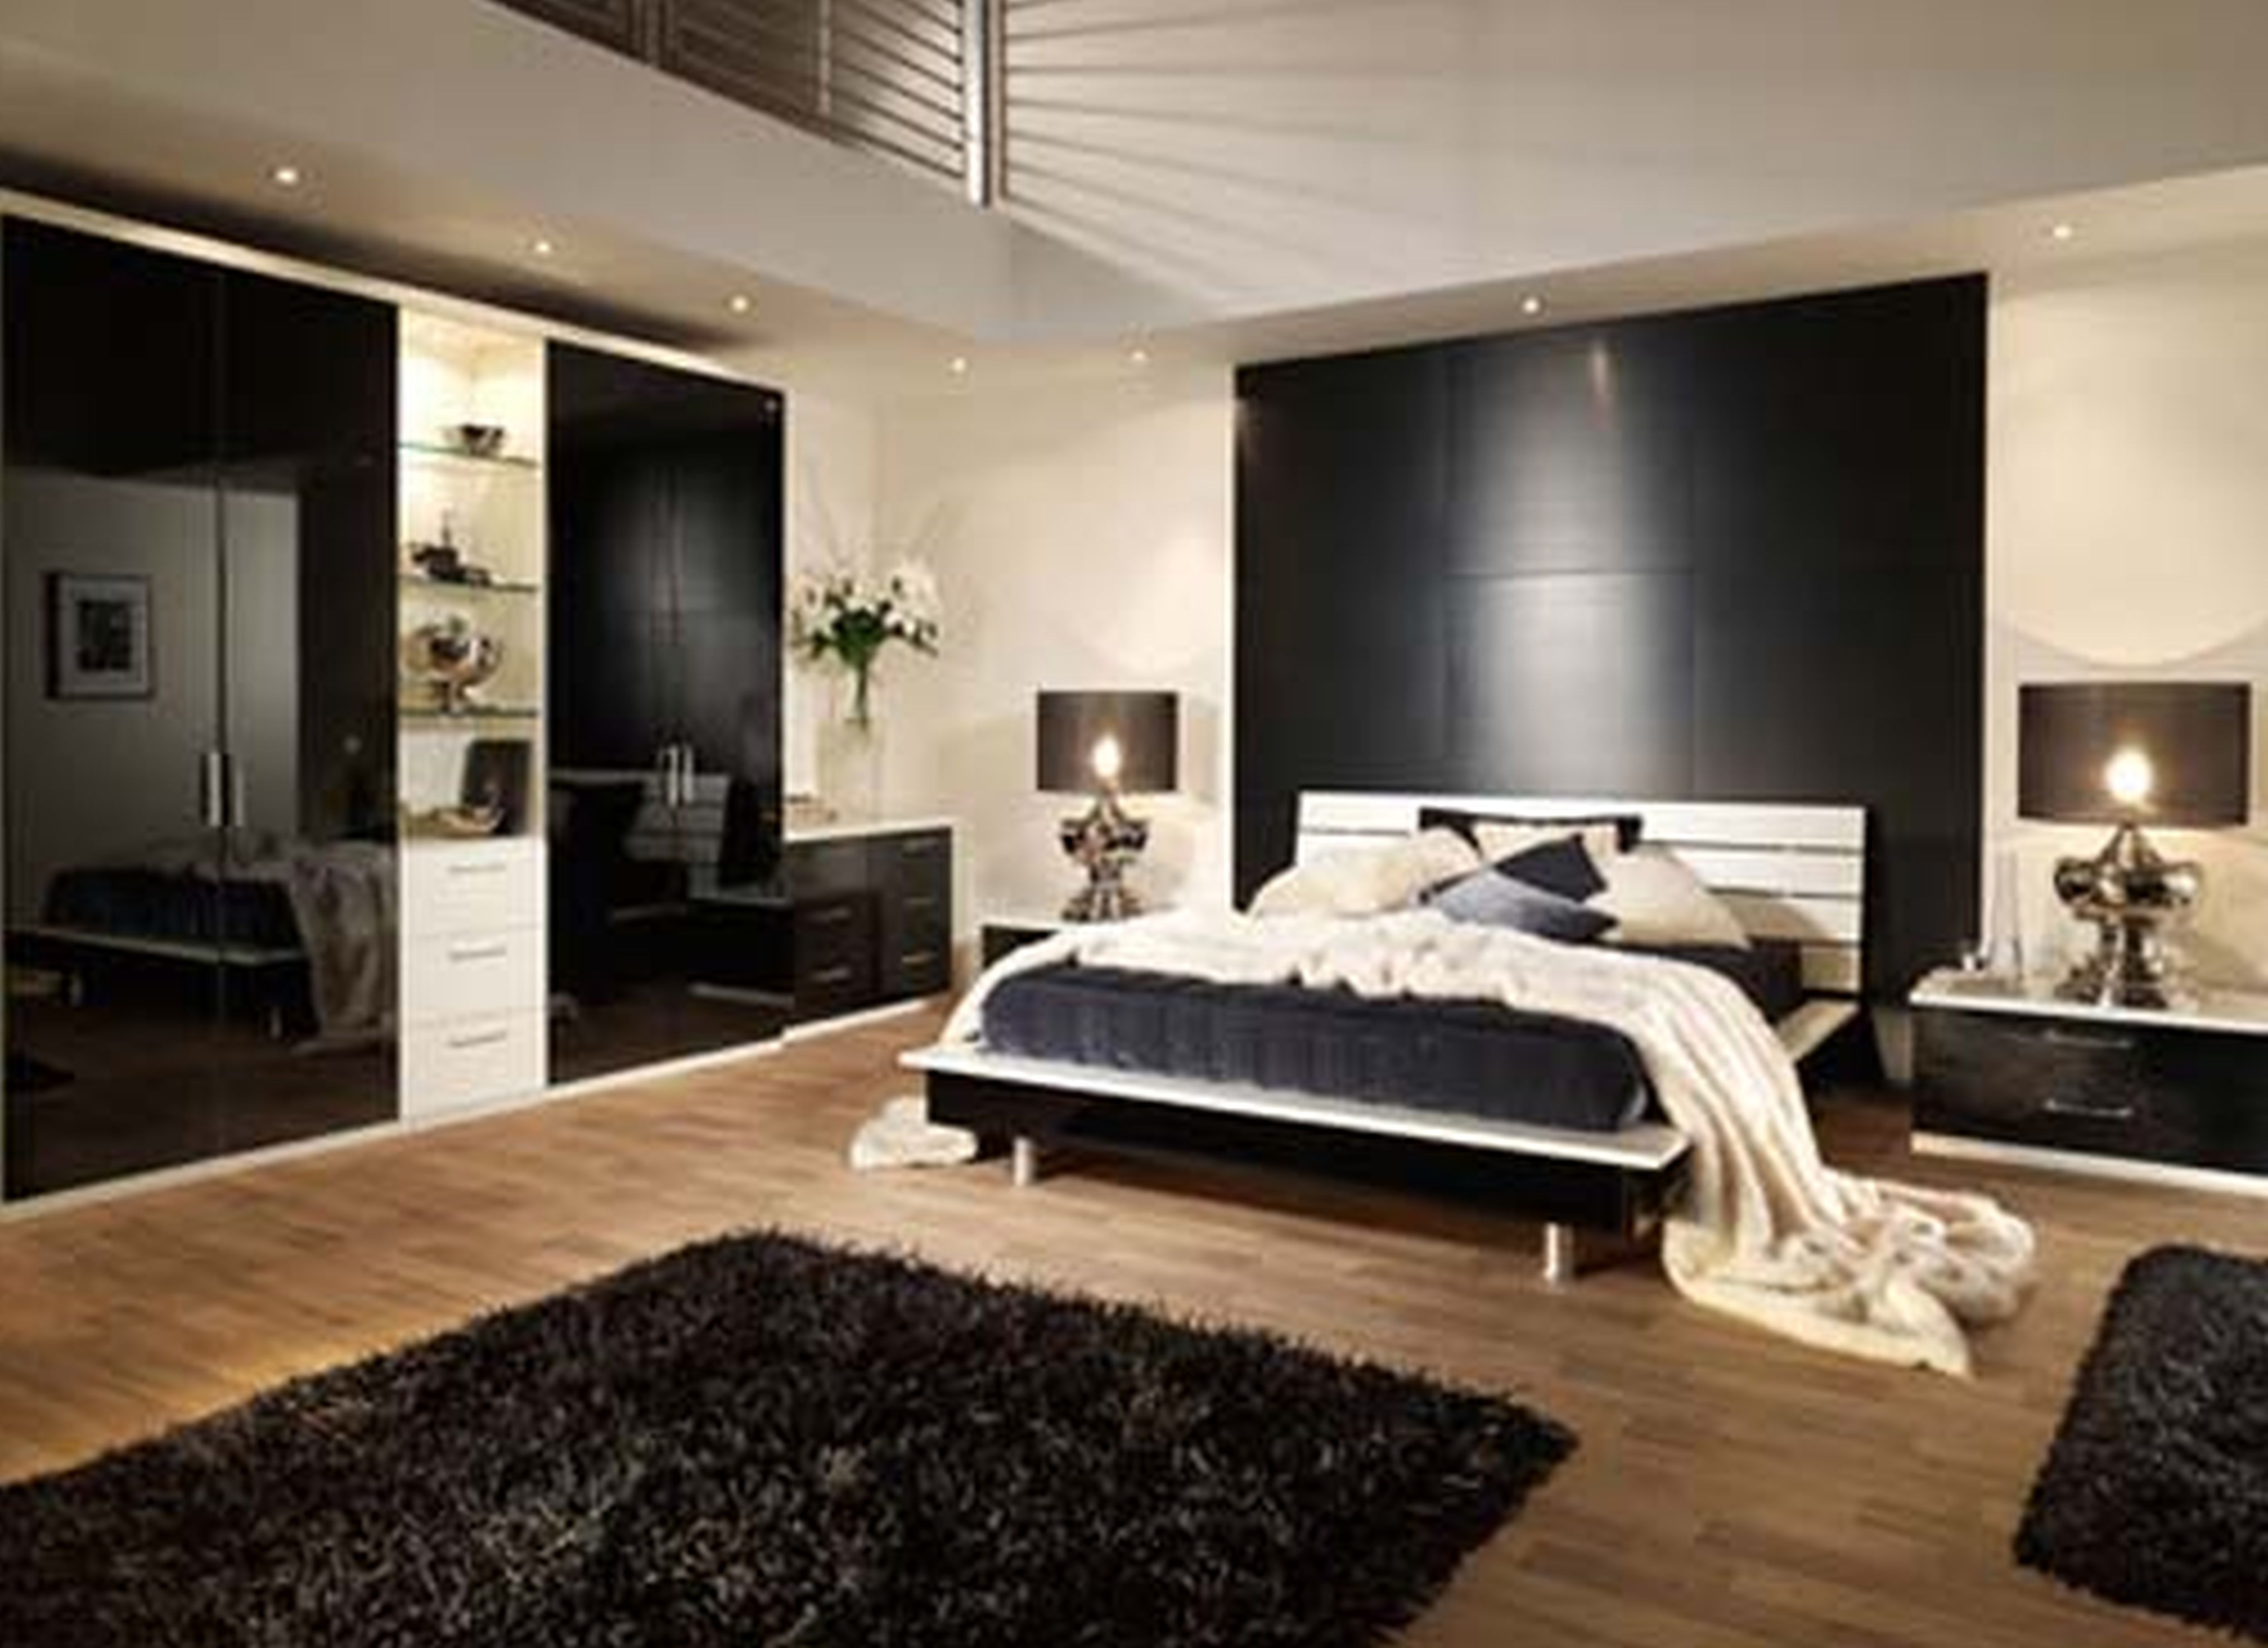 Inspiring bedroom design ideas for men decorate a bedroom for Minimalist master bedroom ideas